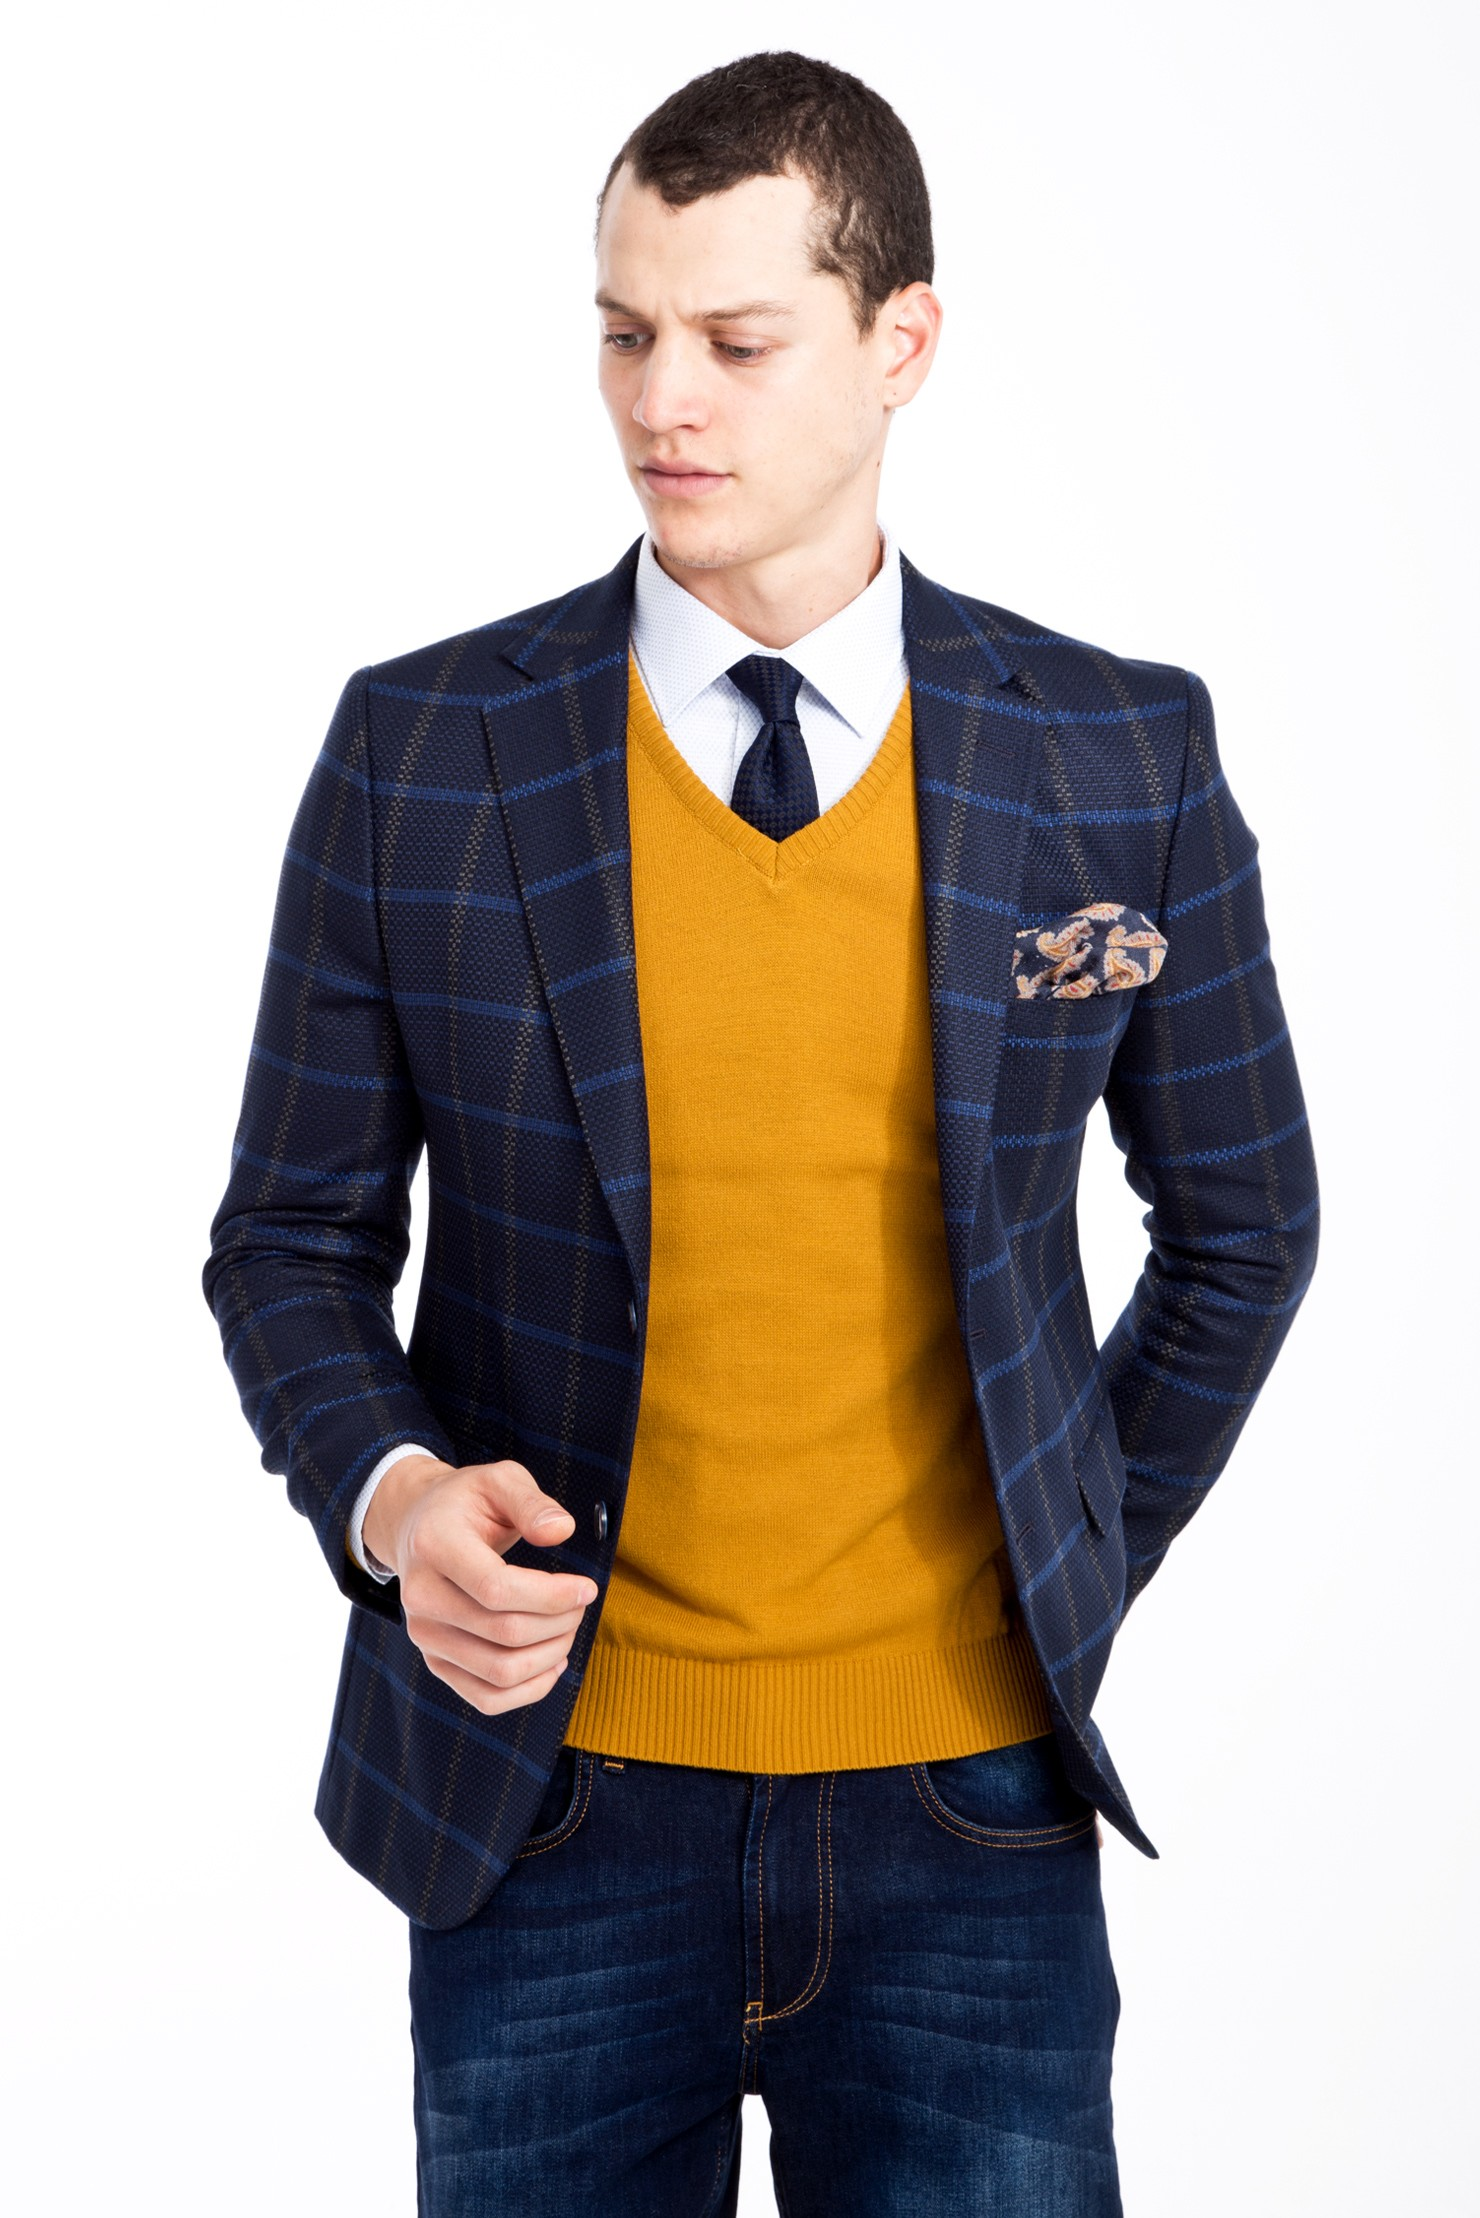 Blazer Navy-Blue Made-In-Turkey Check Slim-Fit Plaid 2-Button Single-Breasted Casual title=